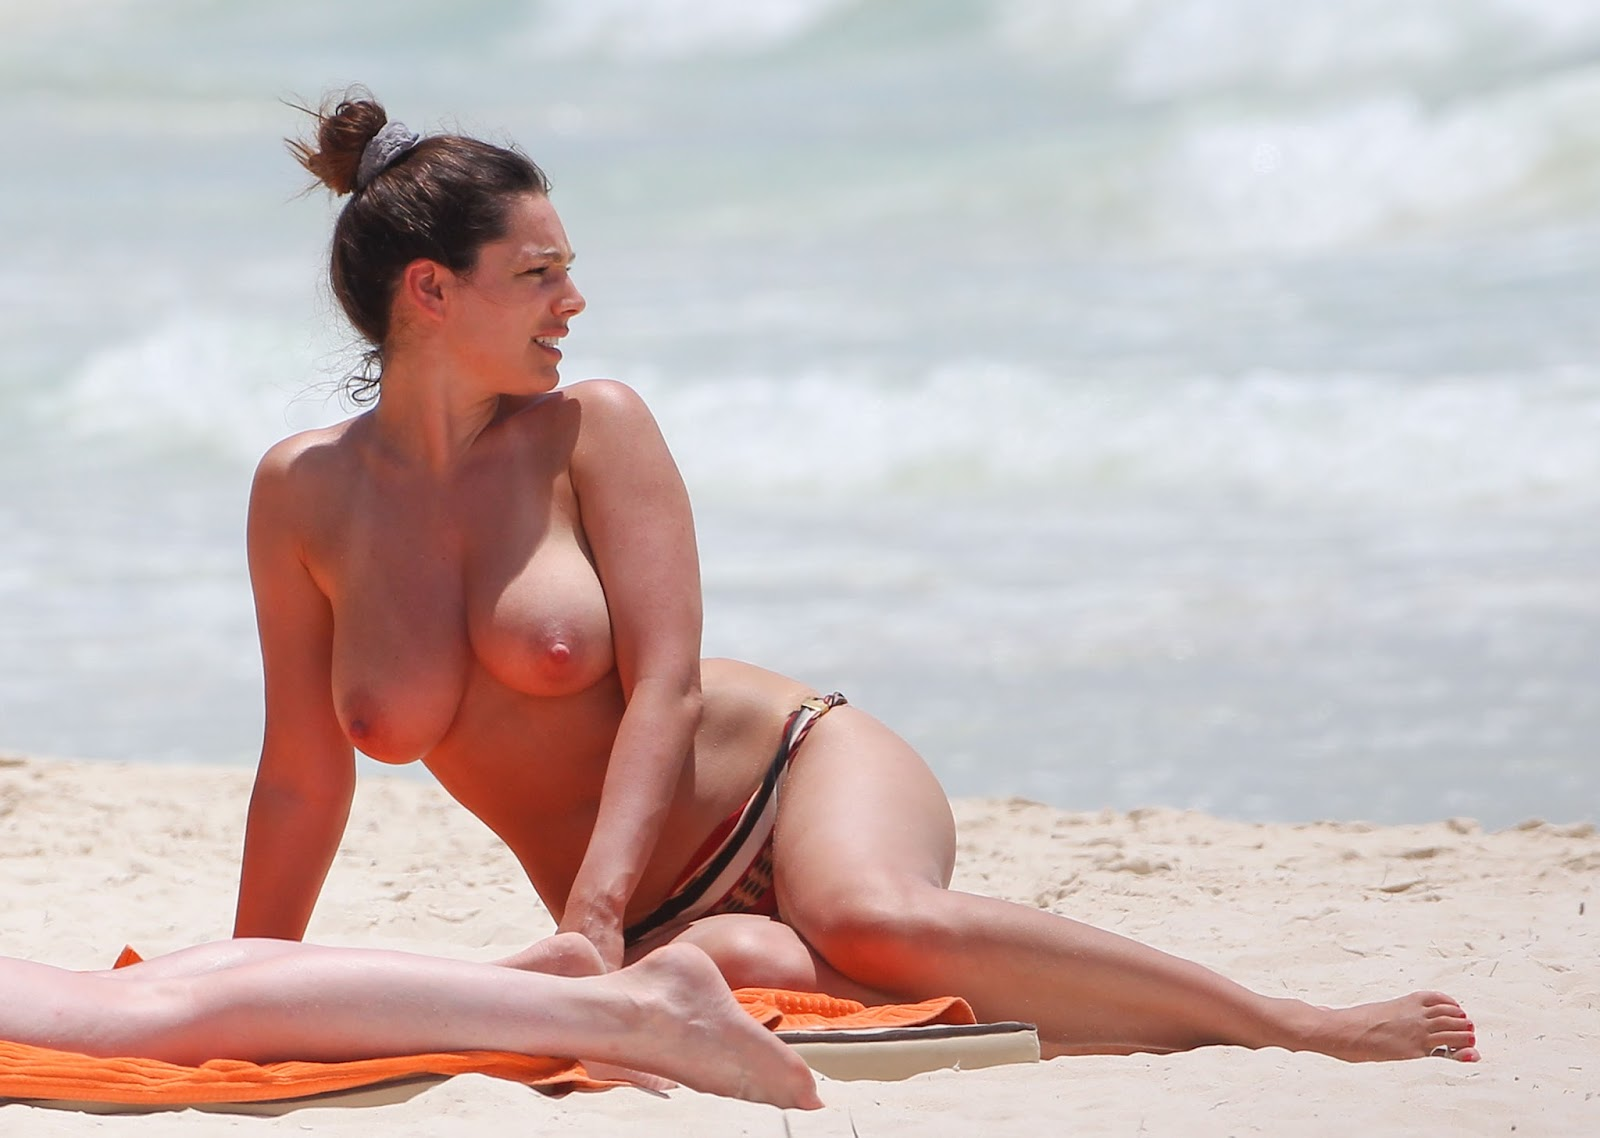 Agree with kelly brook nude beach talk. Quite